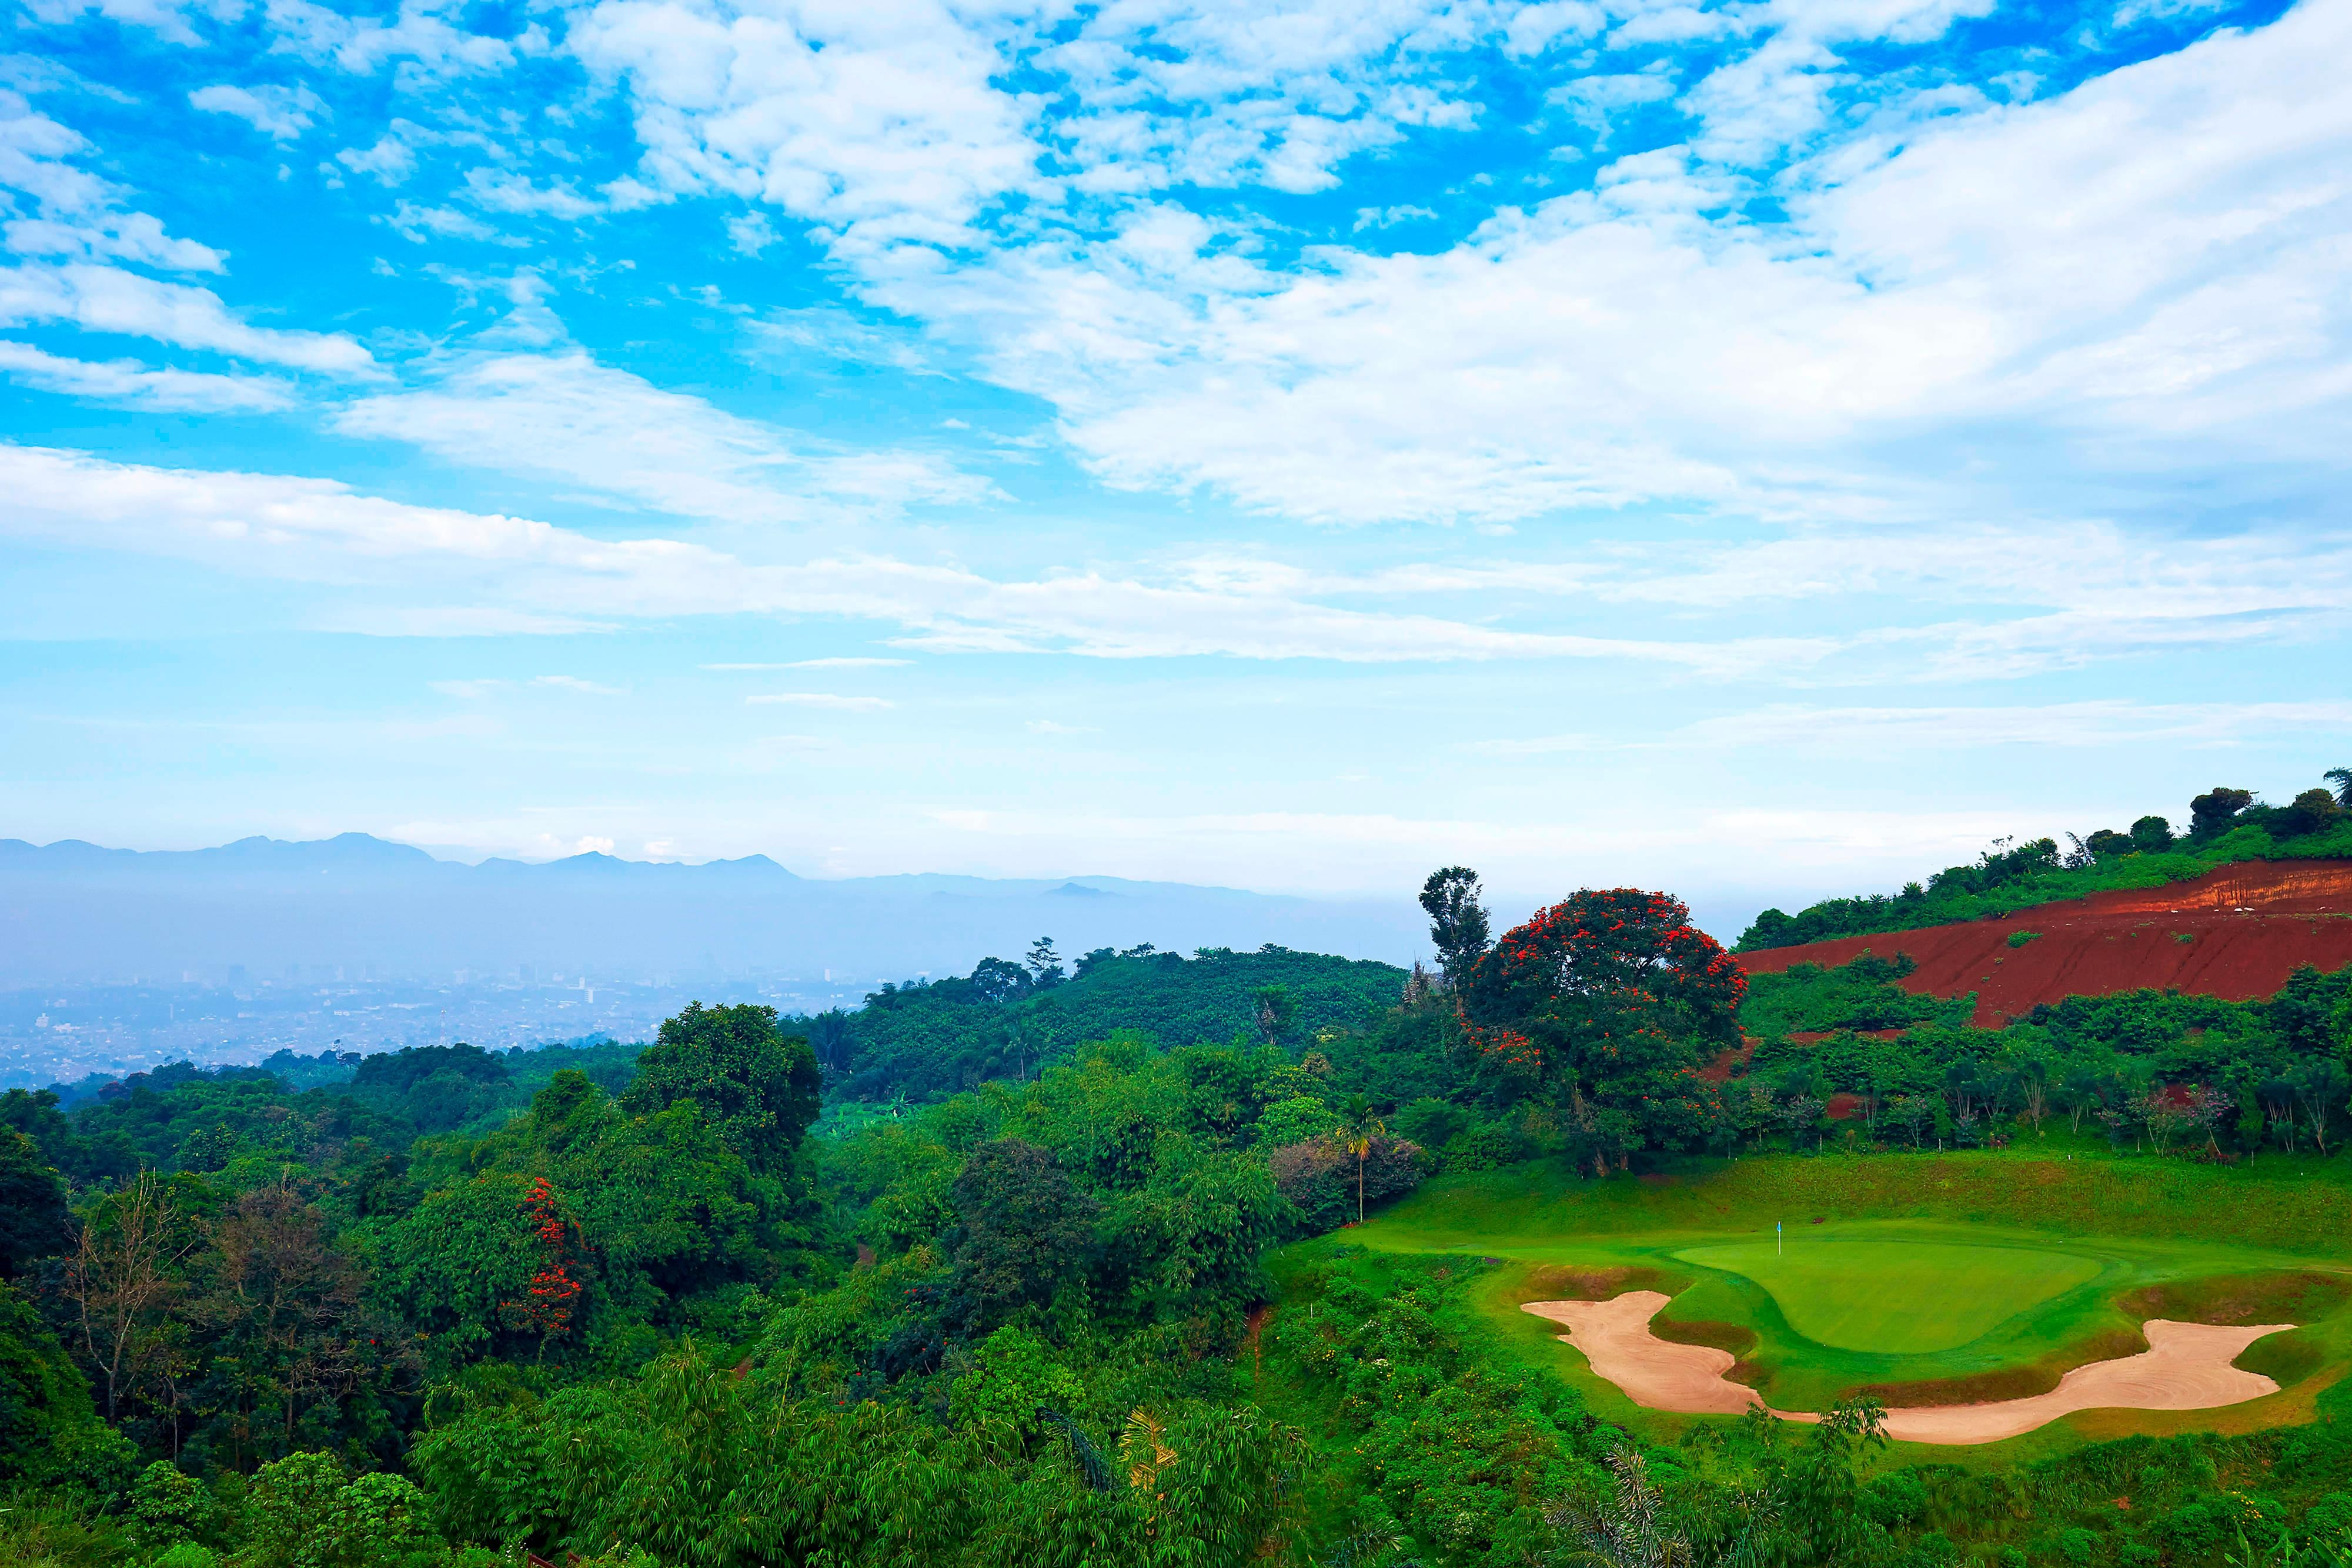 Mountain View Golf Course Dago